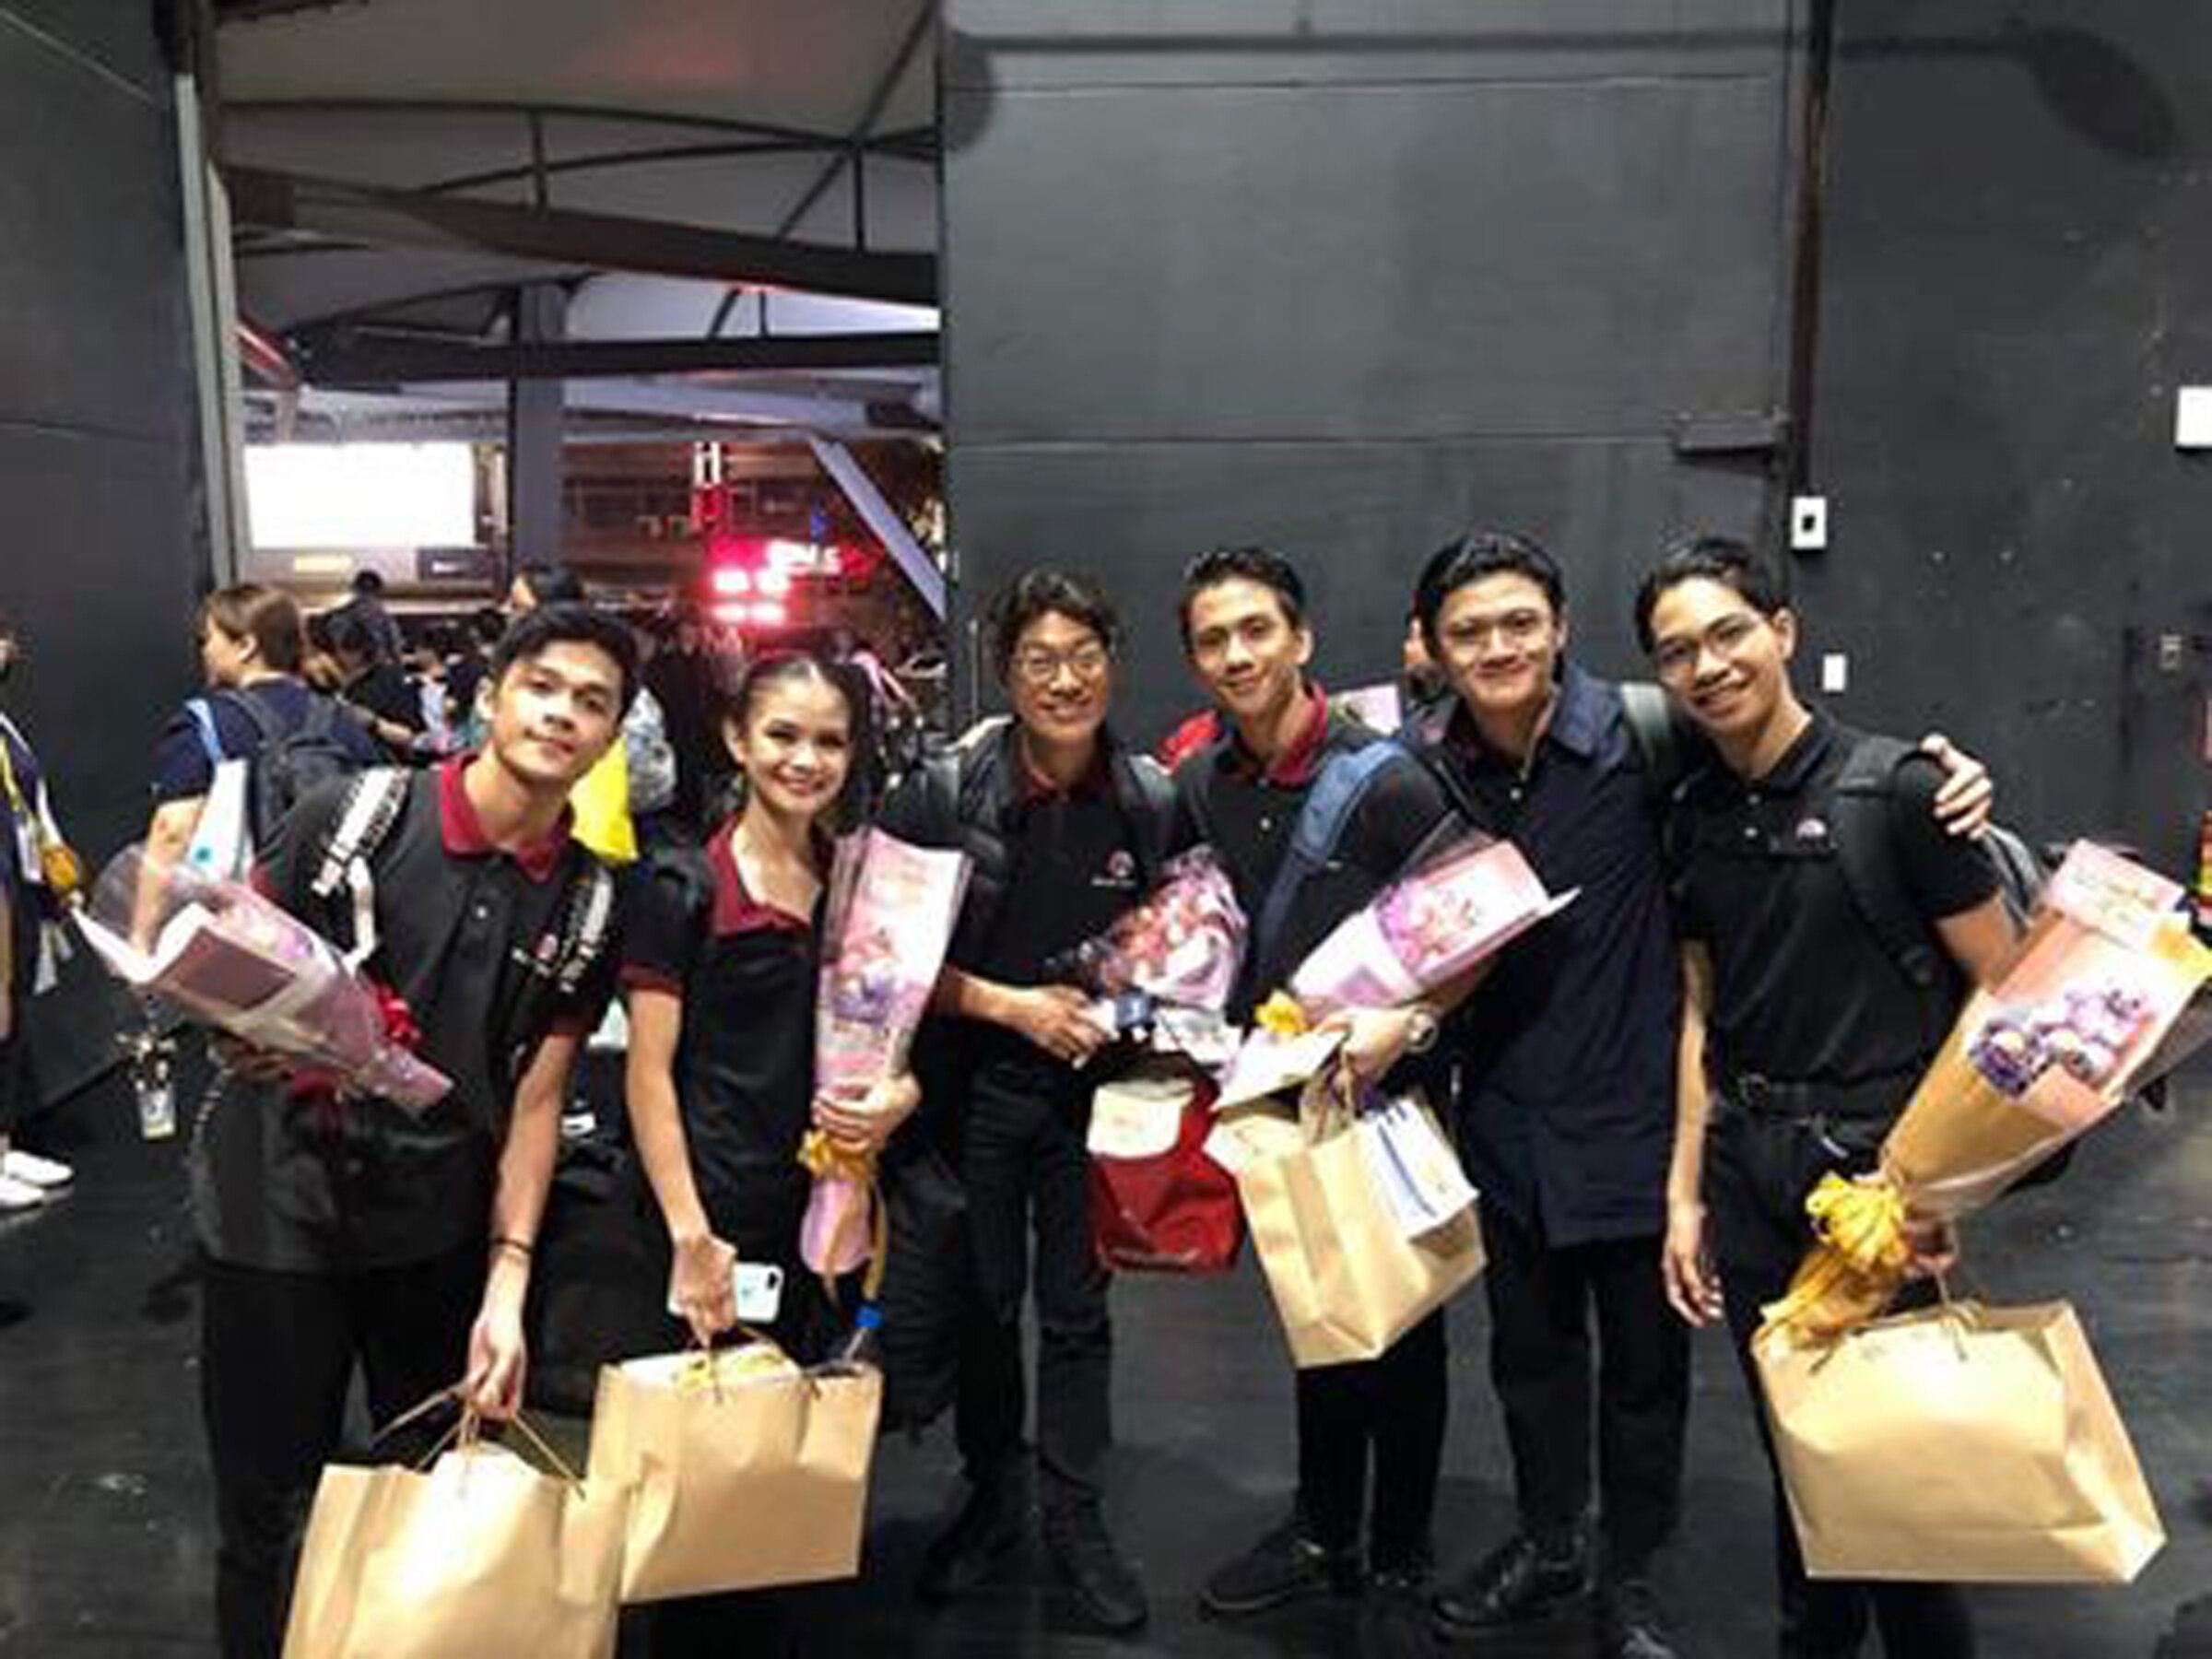 The students of Zhongli Youth Ballet showered the BM group with flowers and gifts in appreciation for their visit.